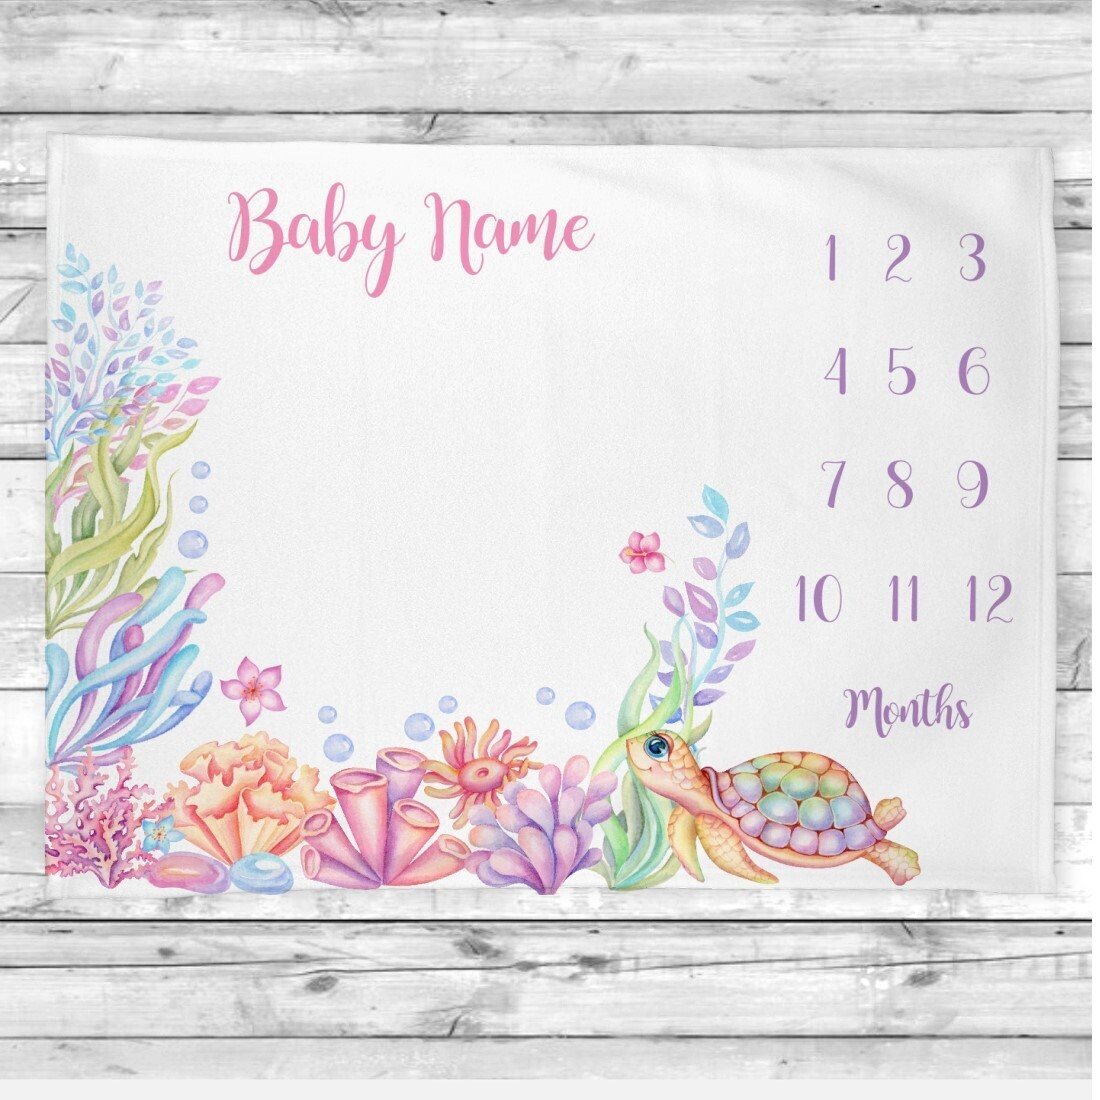 Sea Life Baby Girl Personalized Milestone Blanket Baby Nursery Decor Month New Baby Shower Gift Baby Photo Op Backdrop